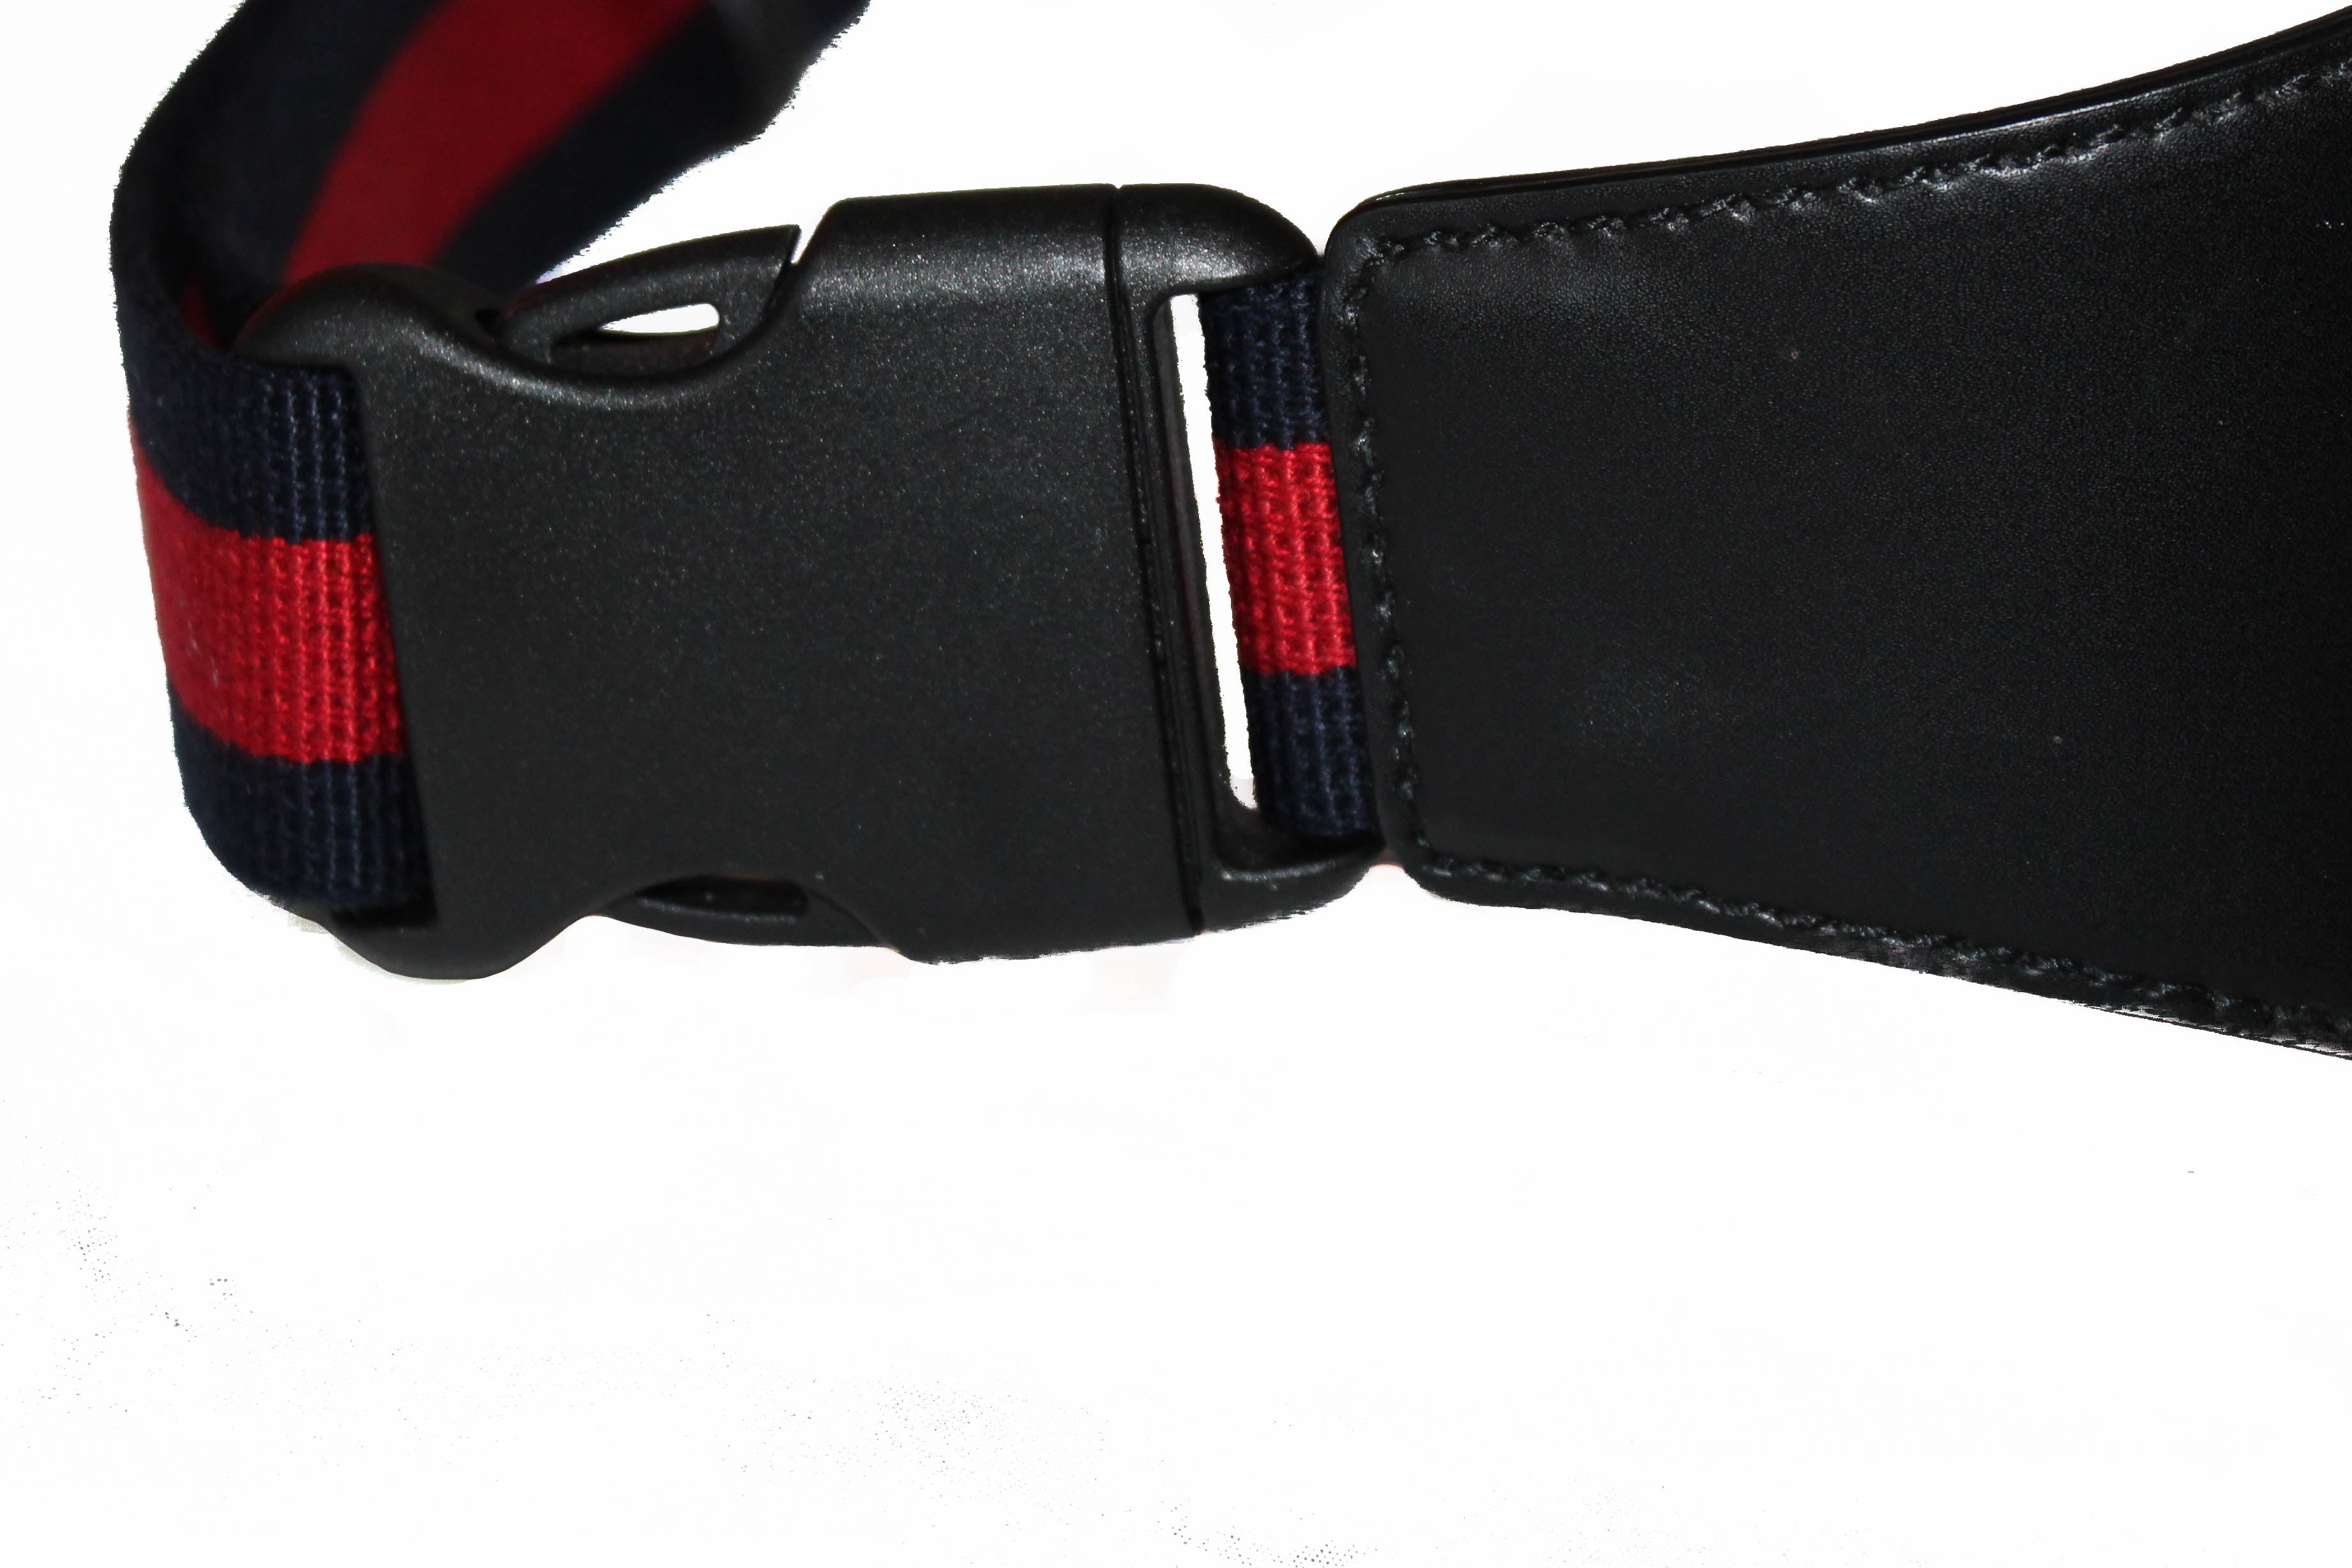 Authentic Gucci Black Belt Bag